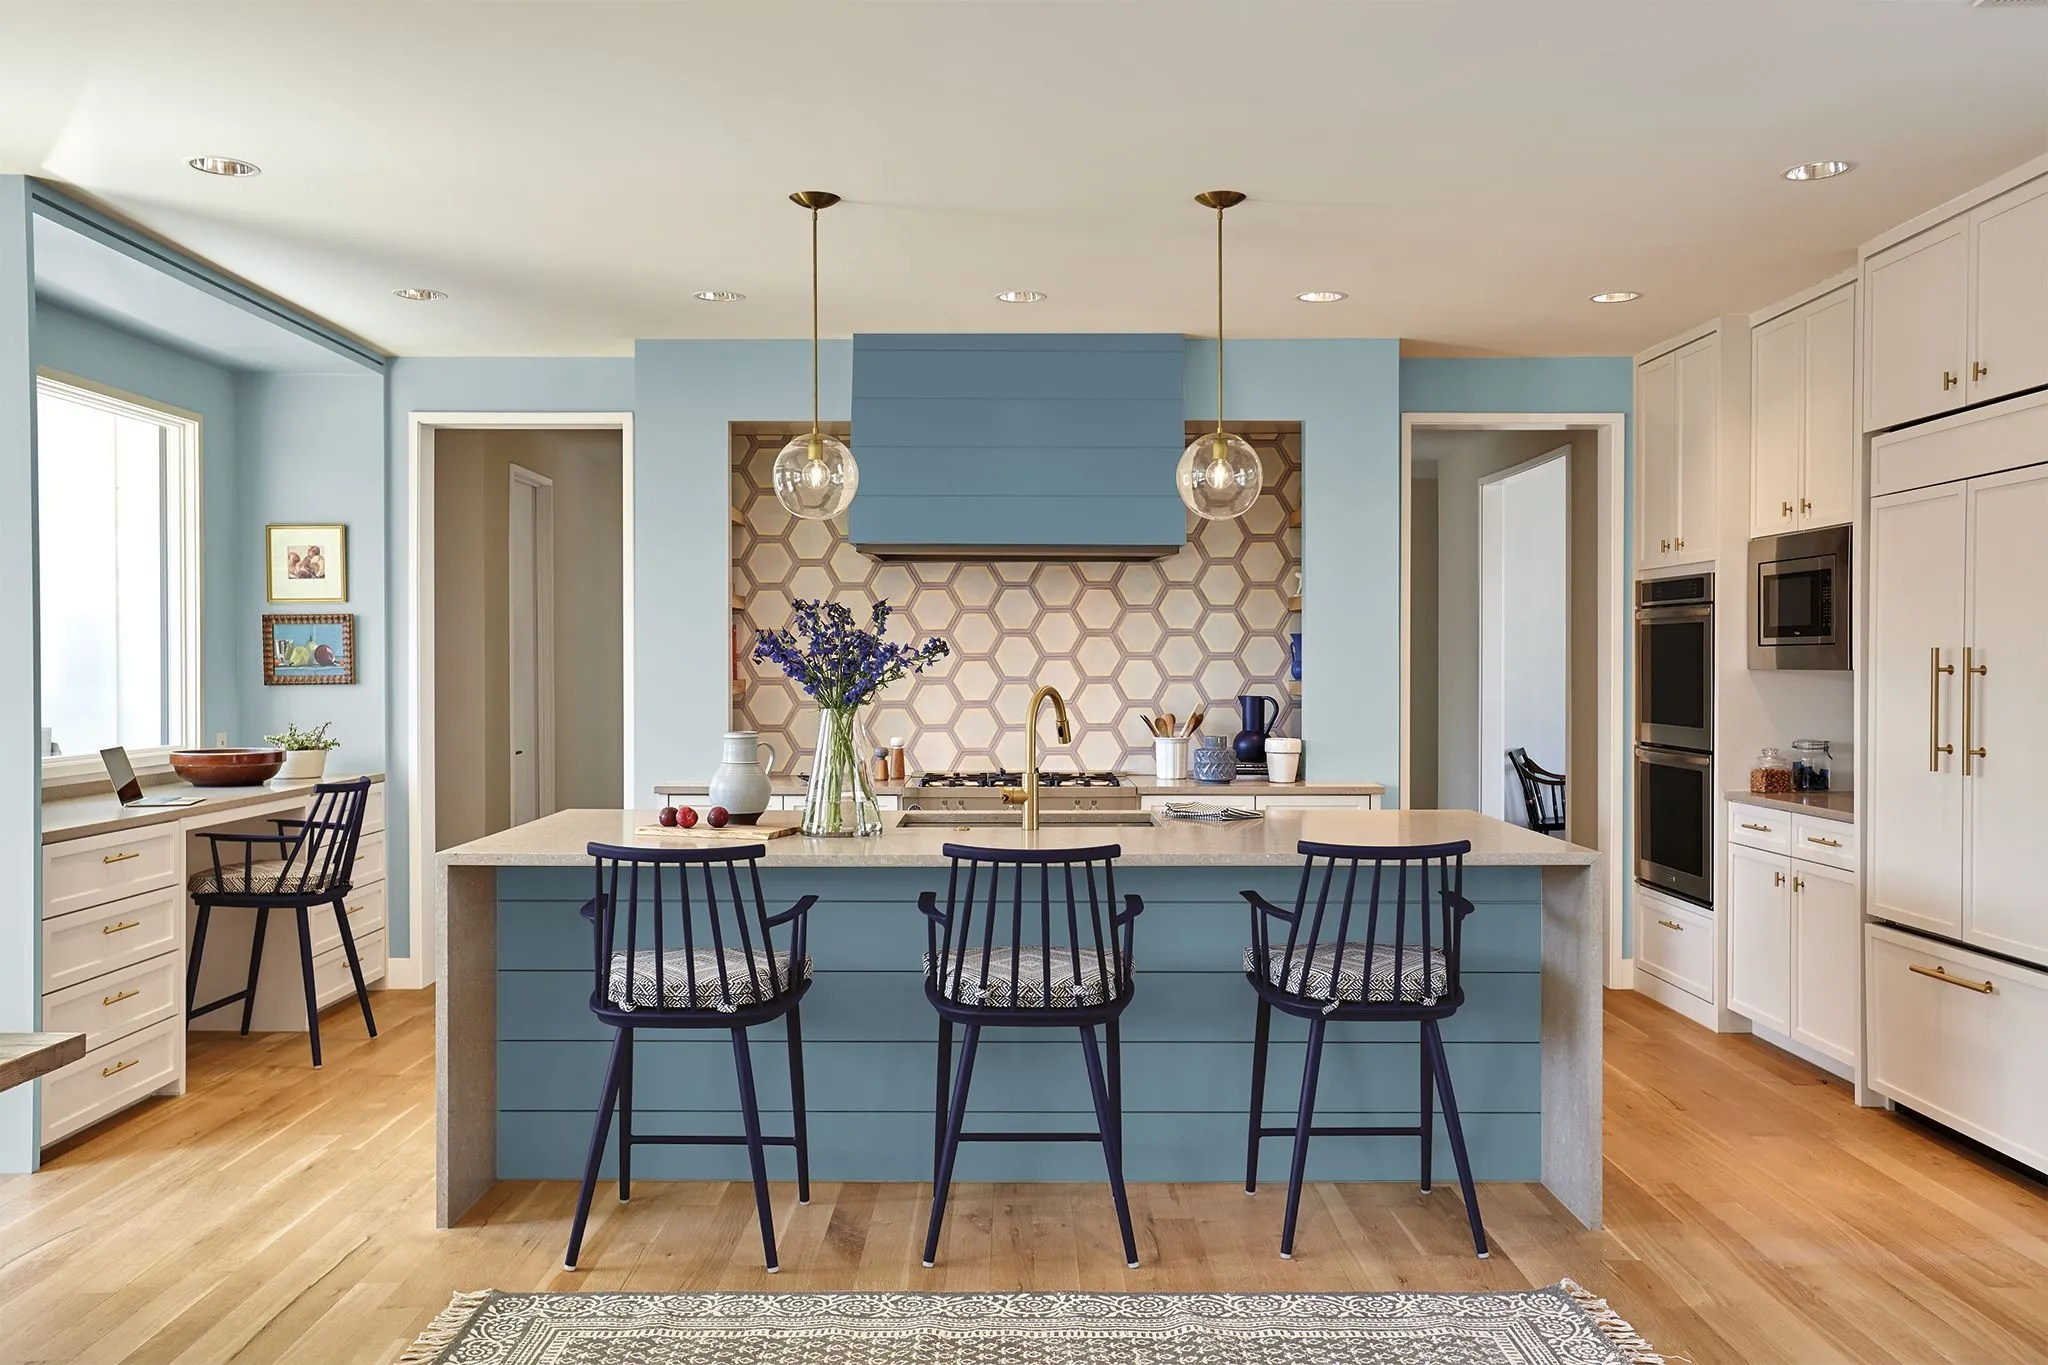 Behr Paint 2019 Color Of The Year Blueprint S470 5 New